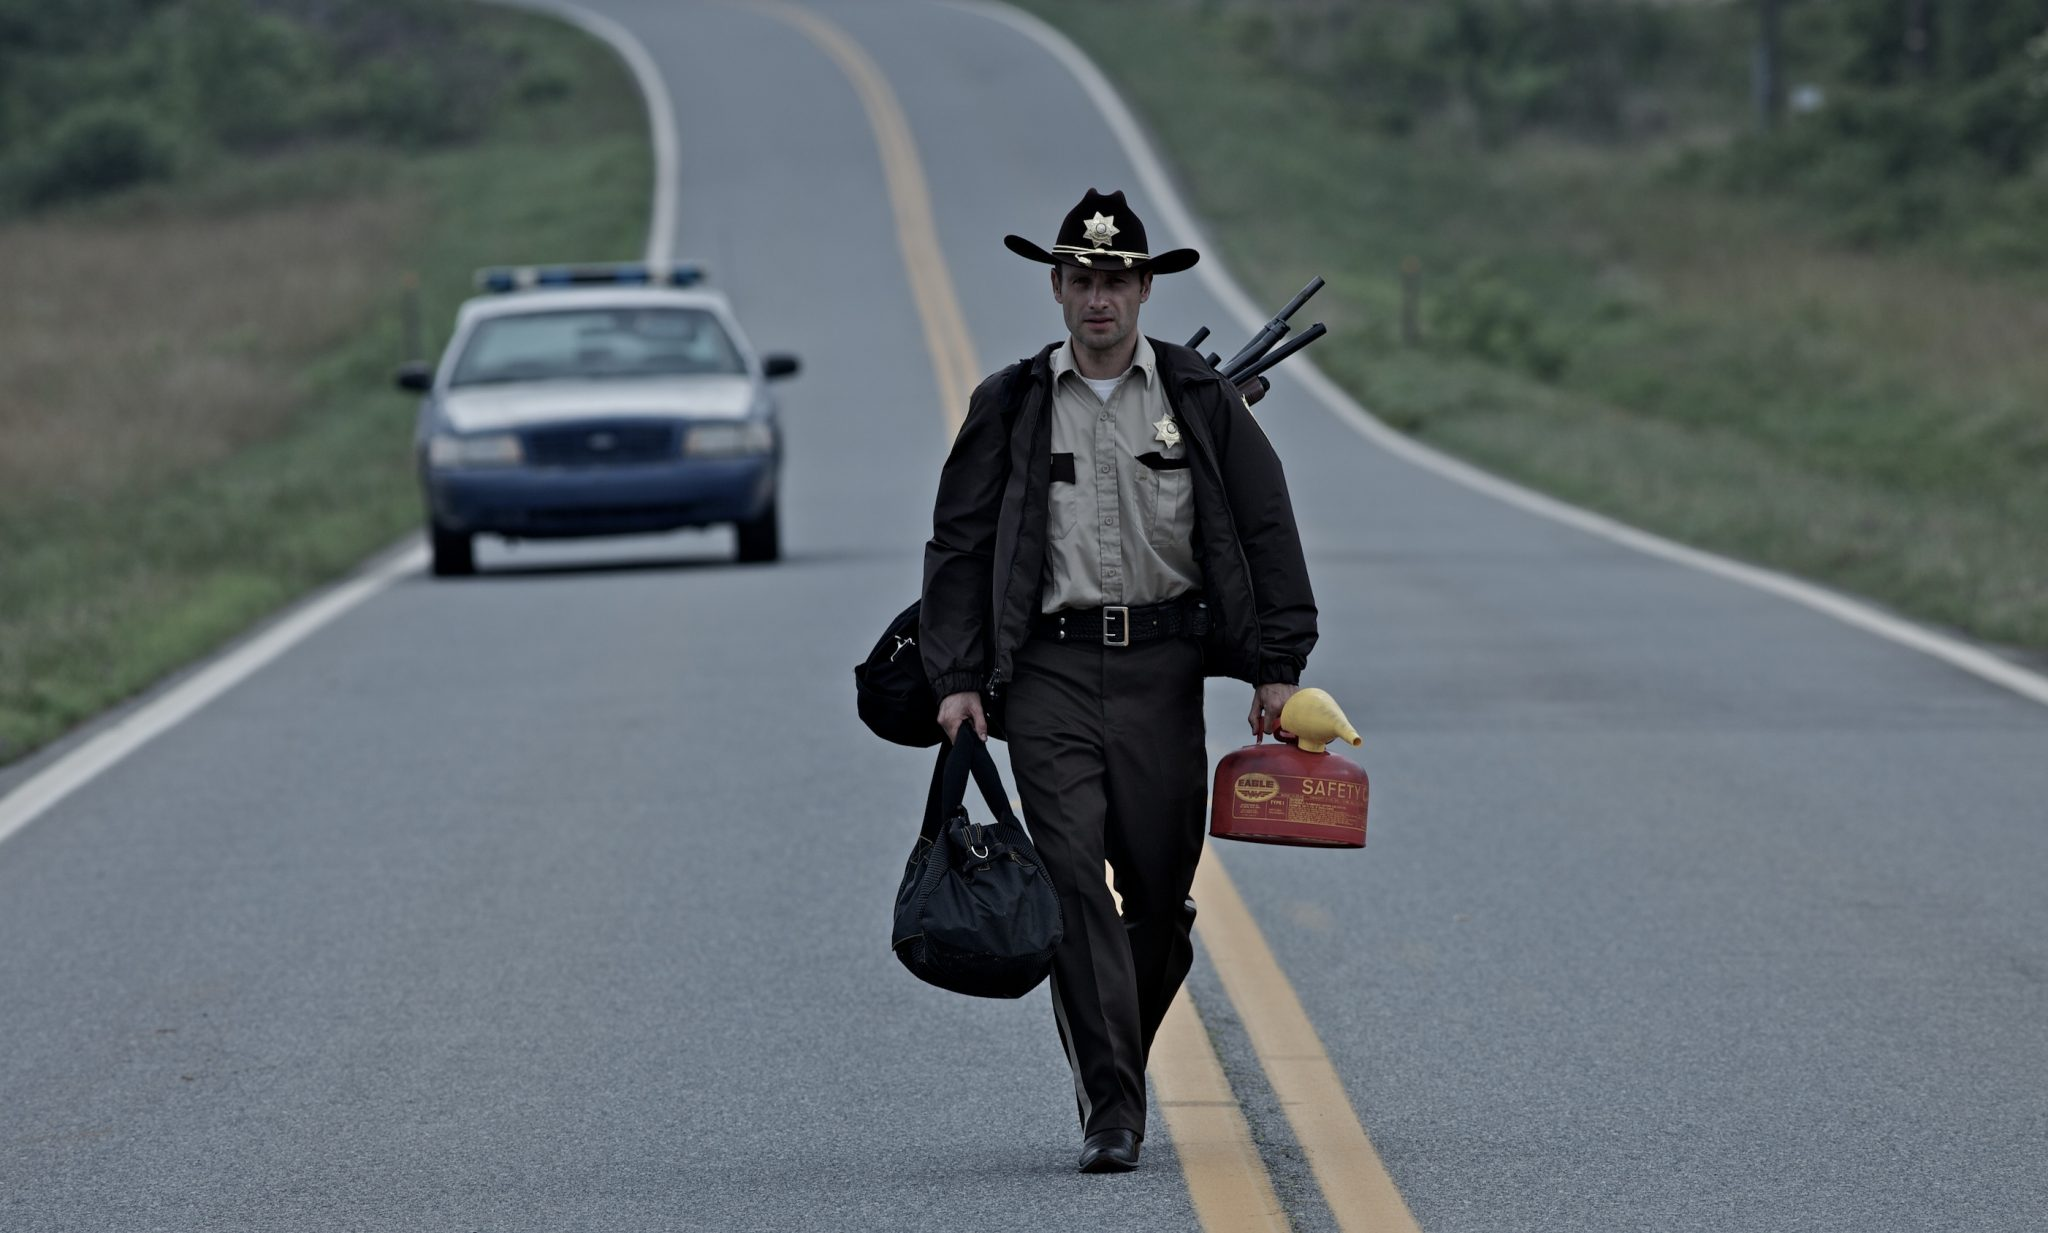 amc_walking_dead_tv_show_image_andrew_lincoln_rick_grimes_01